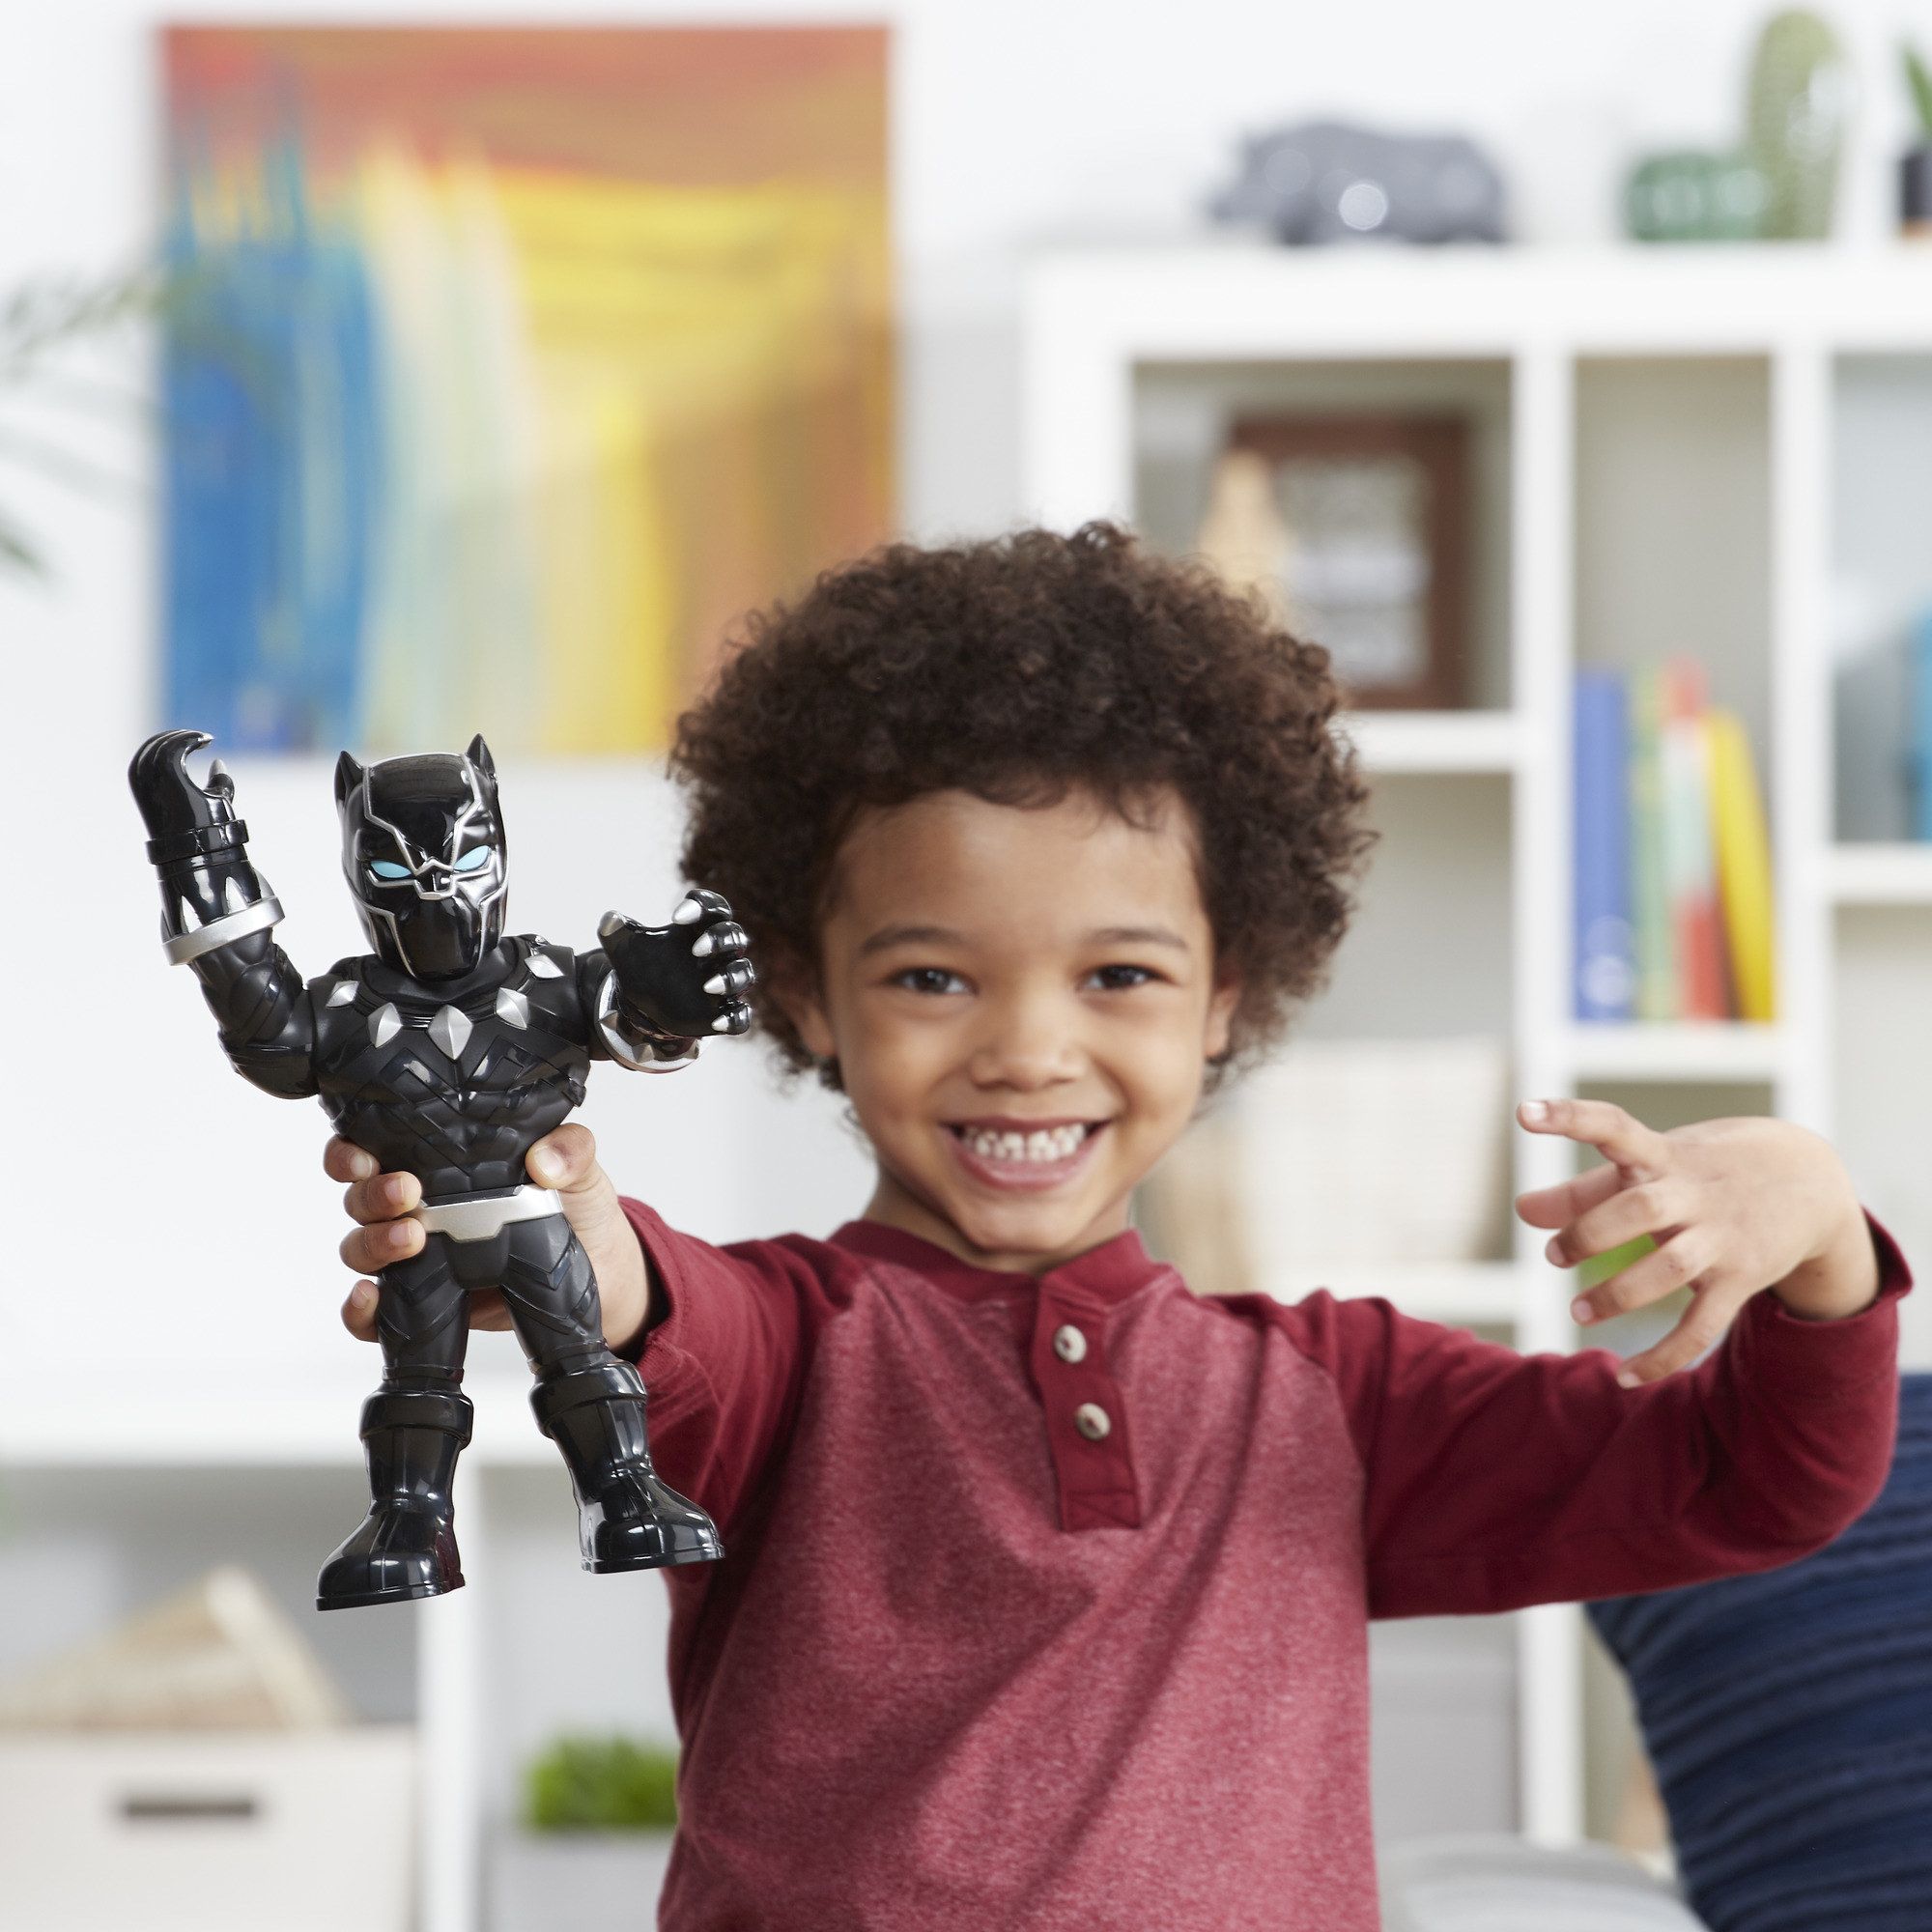 The Black Panther action figure, which is small enough for a young child to hold and has no small pieces